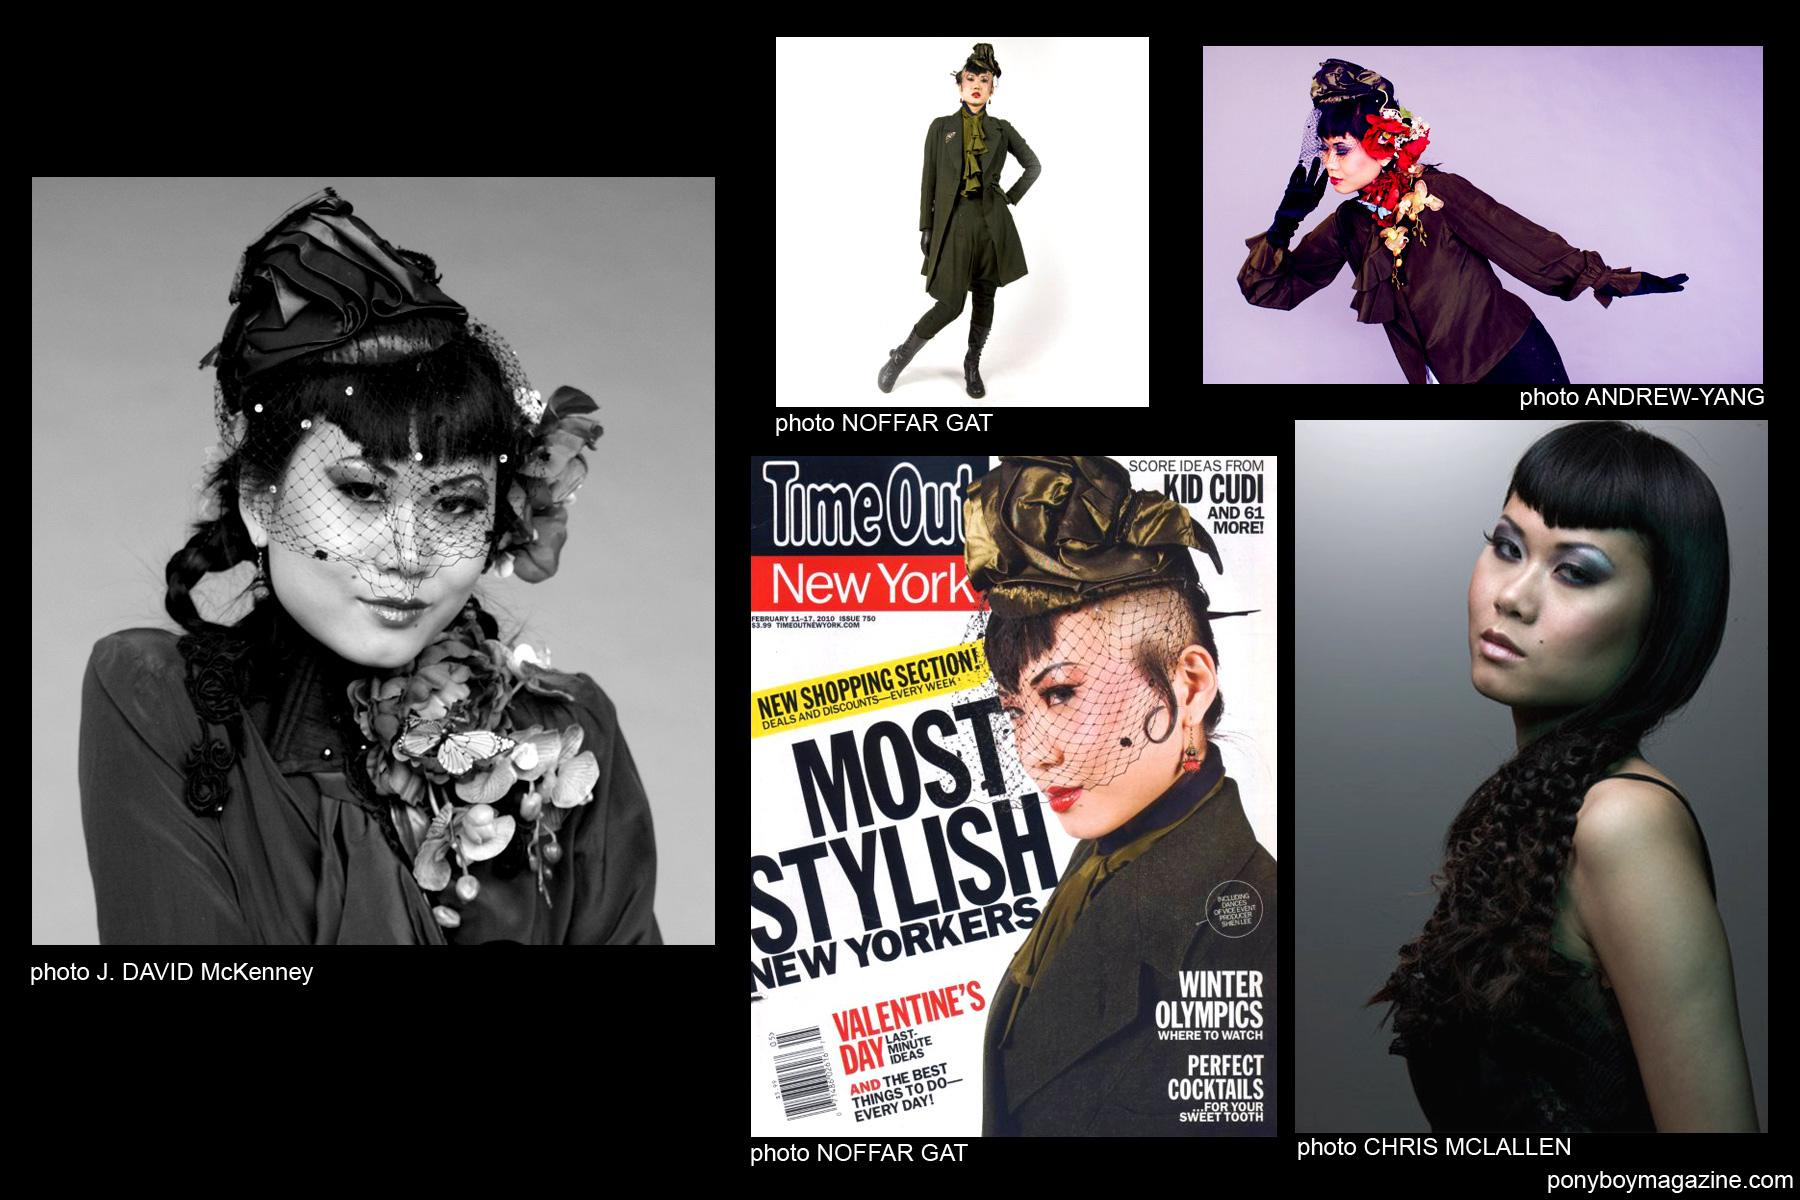 Shien Lee images including her TimeOut NY cover for Ponyboy Magazine.